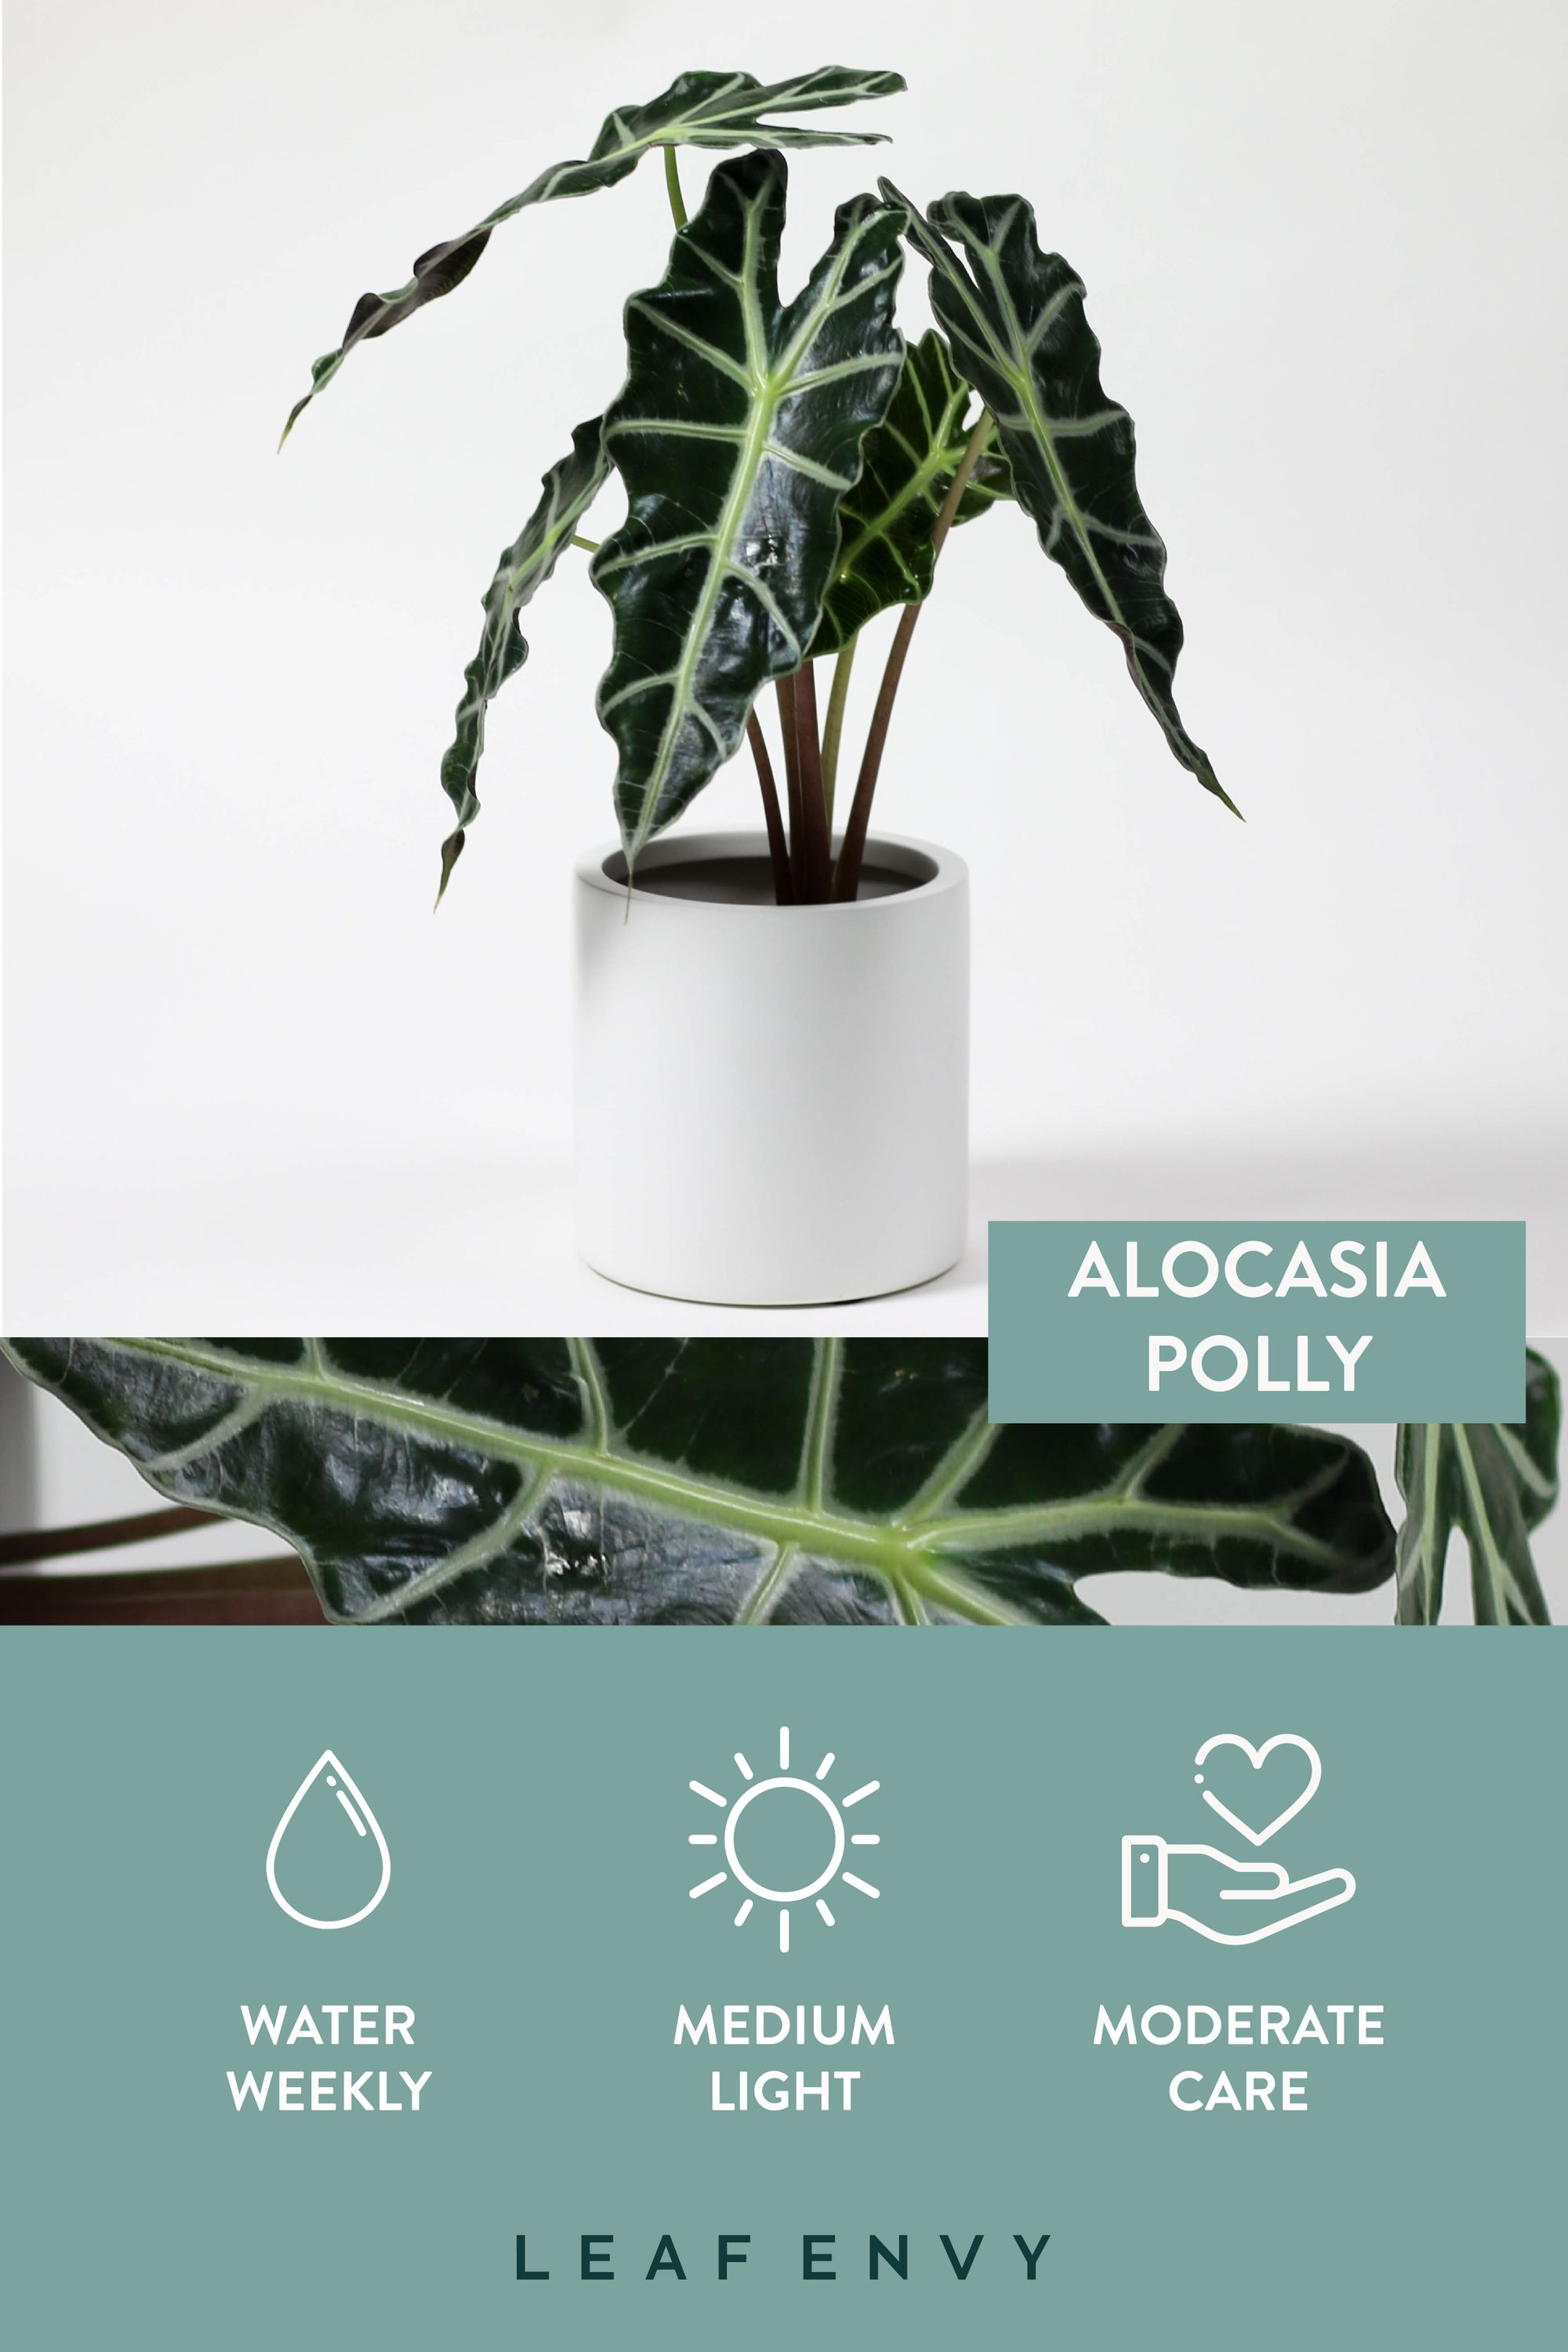 Photo of Alocasia polly